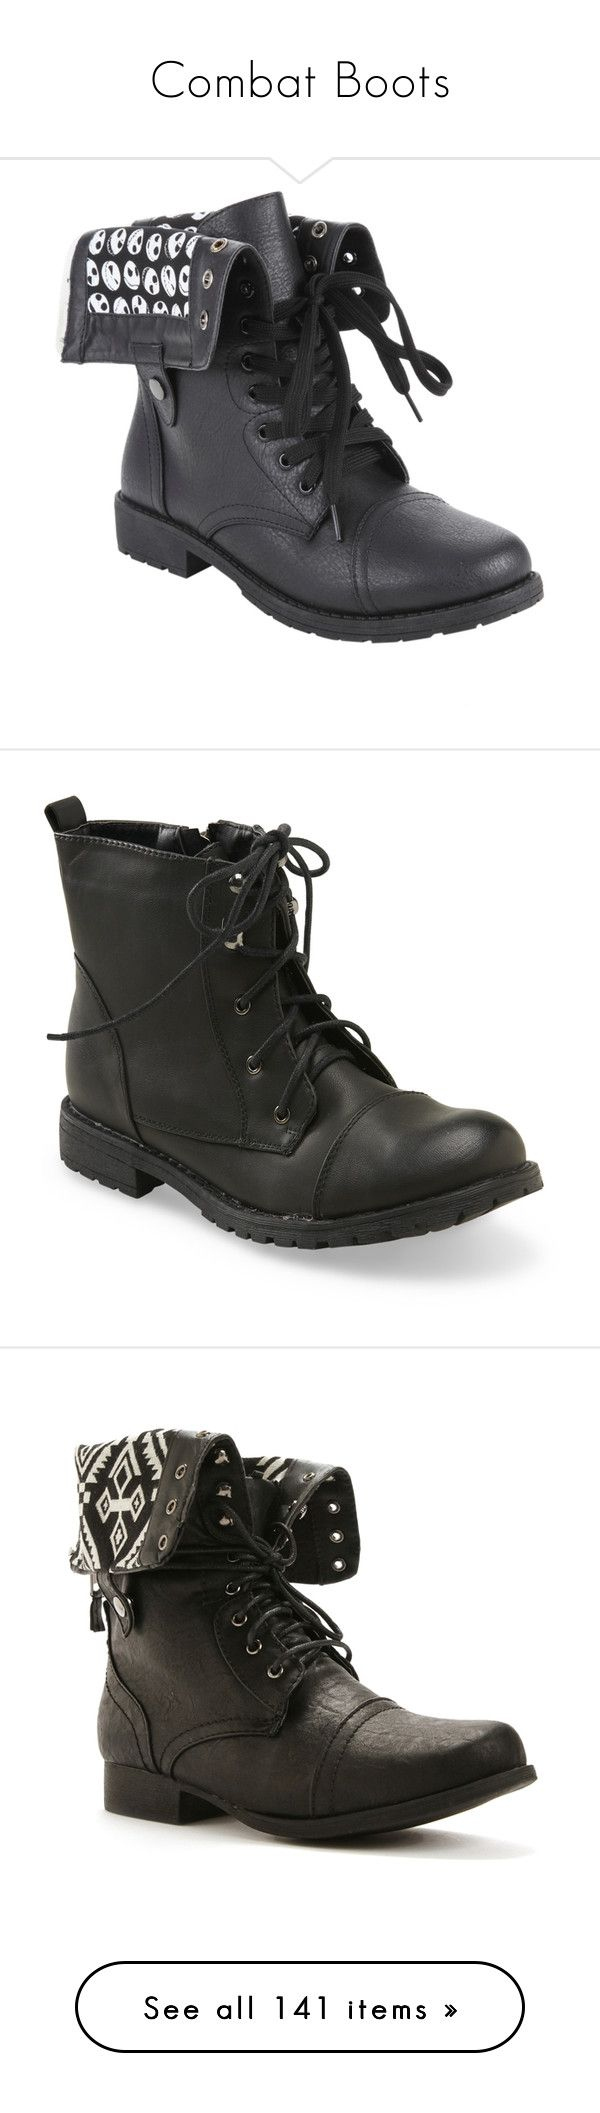 """""""Combat Boots"""" by ducky0524 ❤ liked on Polyvore featuring shoes, boots, ankle booties, fold-over boots, military lace up boots, black shoes, military combat boots, combat boots, sapatos and botas"""